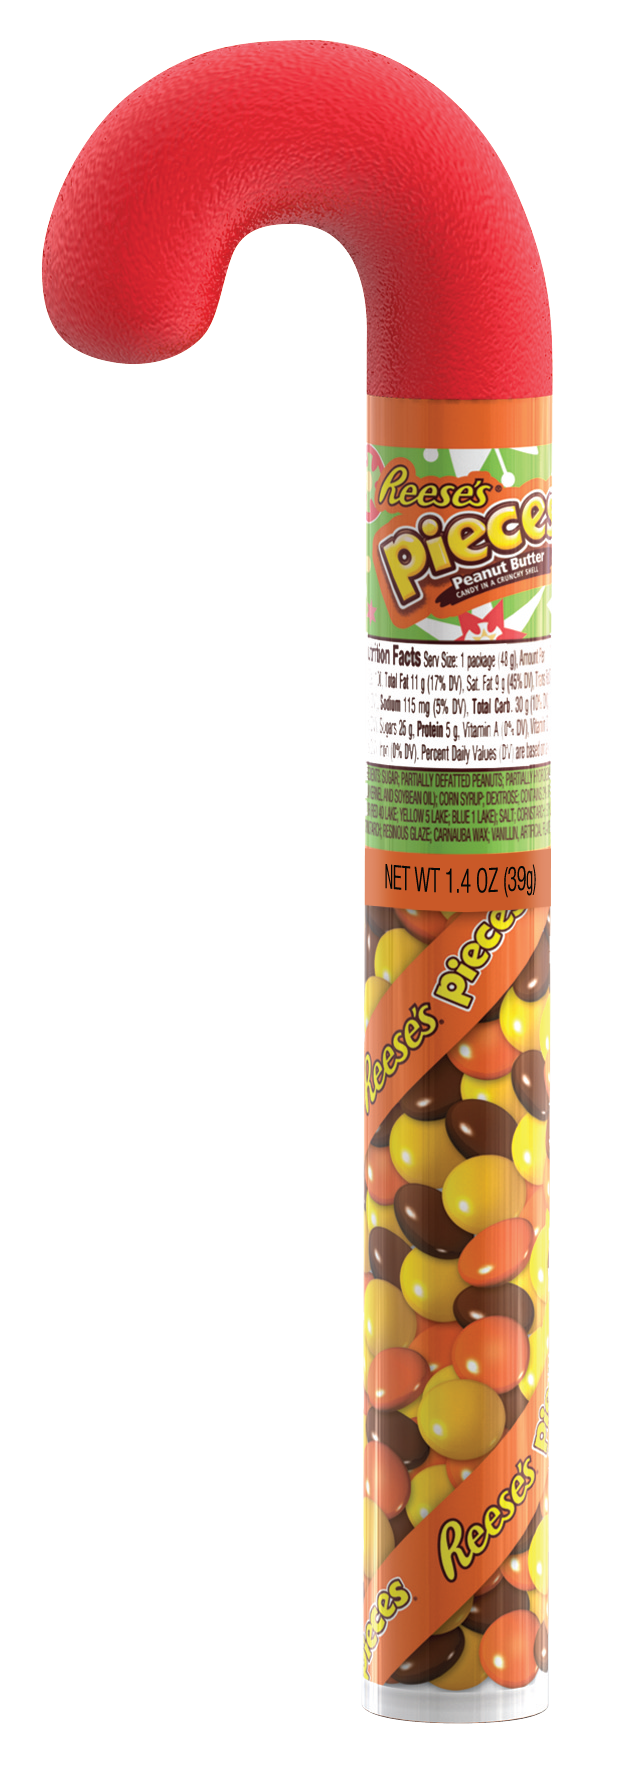 Reese's, Holiday Pieces Peanut Butter Candy Filled Cane, 1.4 Oz.